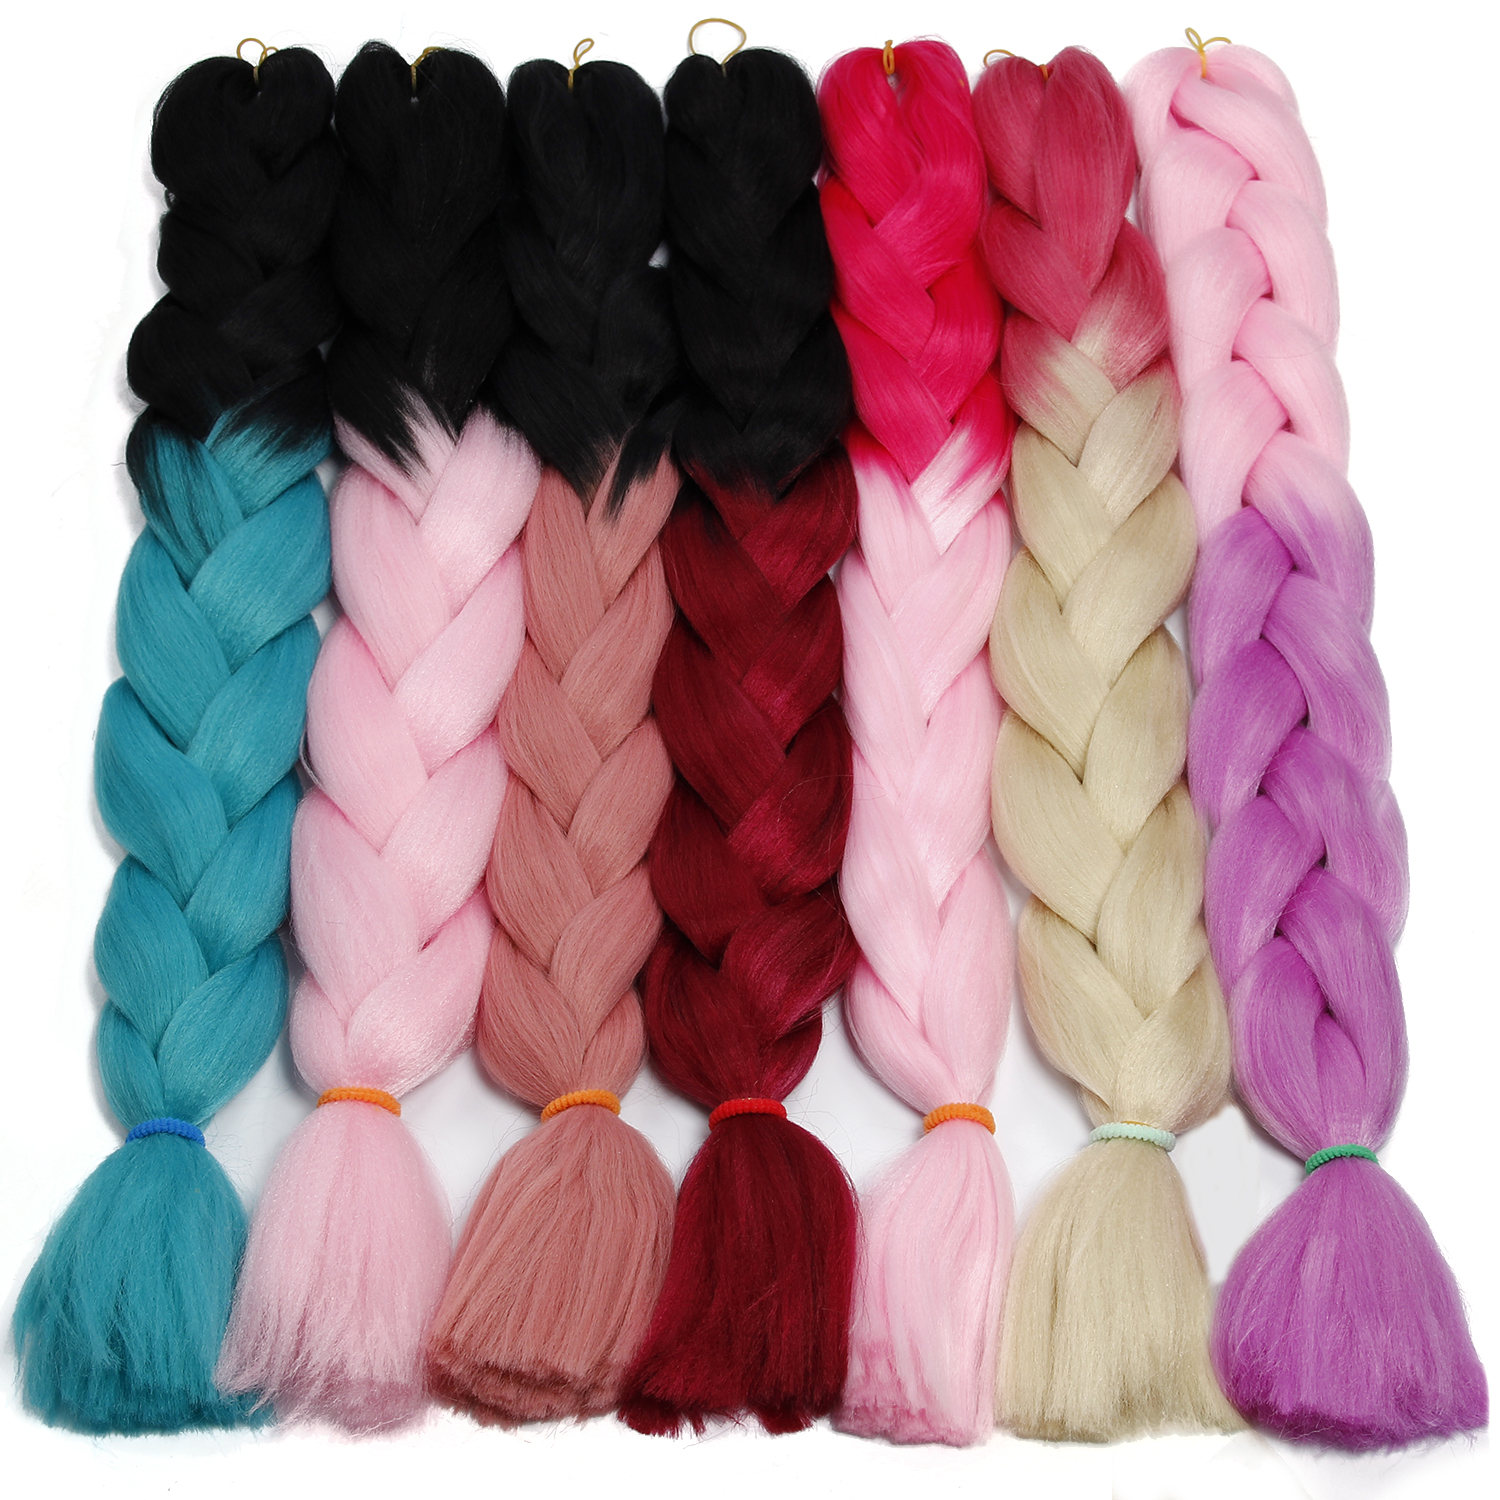 Synthetic Hair Extension 82'' 165g Crochet Hair Black Pink Purple Long Jumbo Braid Crochet Xpression Braiding Hair Kanekalon